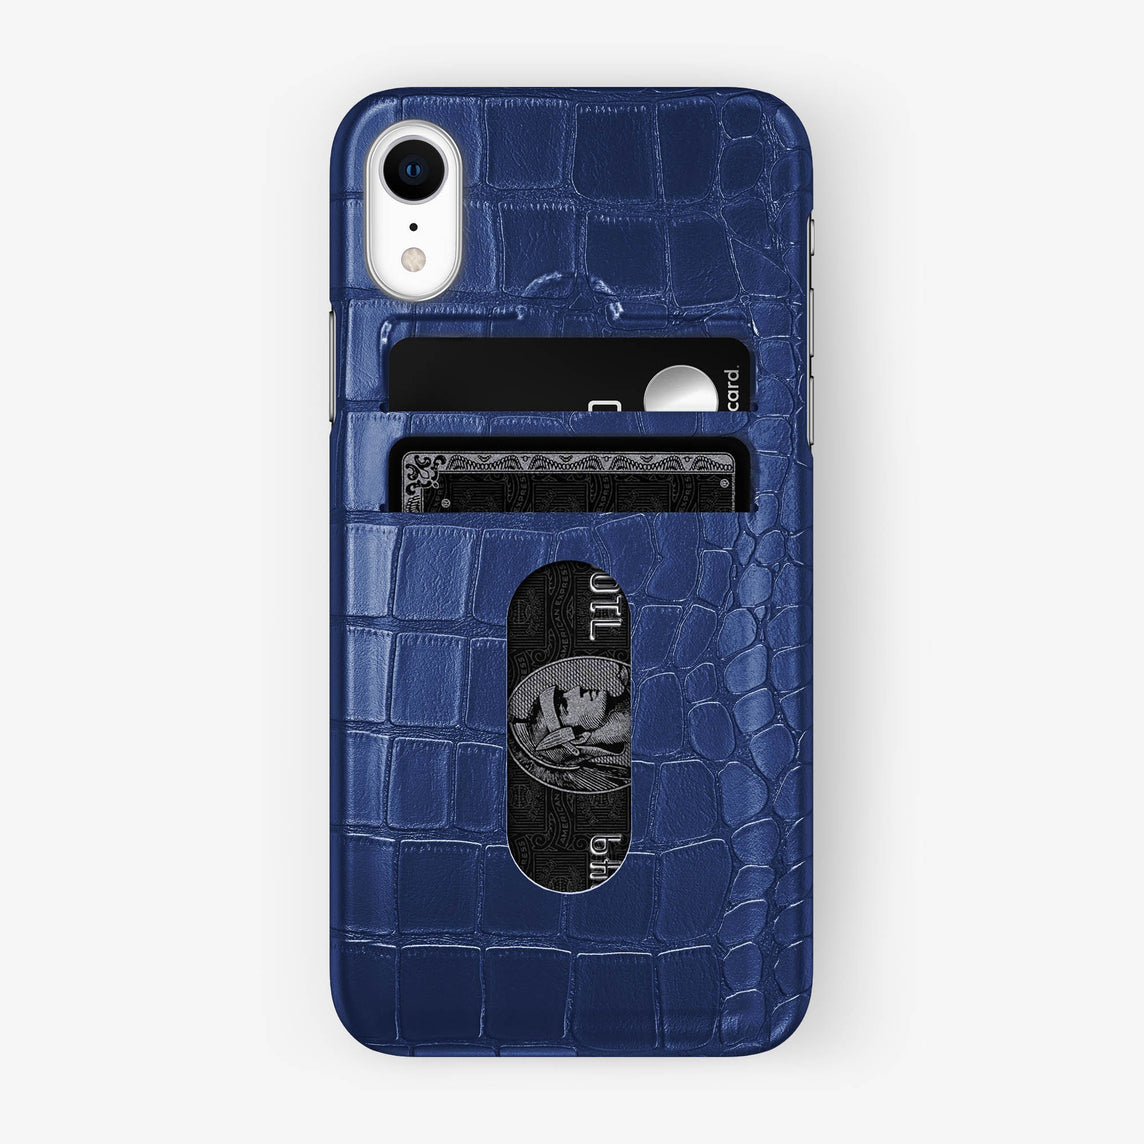 Alligator Card Holder Case iPhone Xr | Navy blue - Stainless Steel